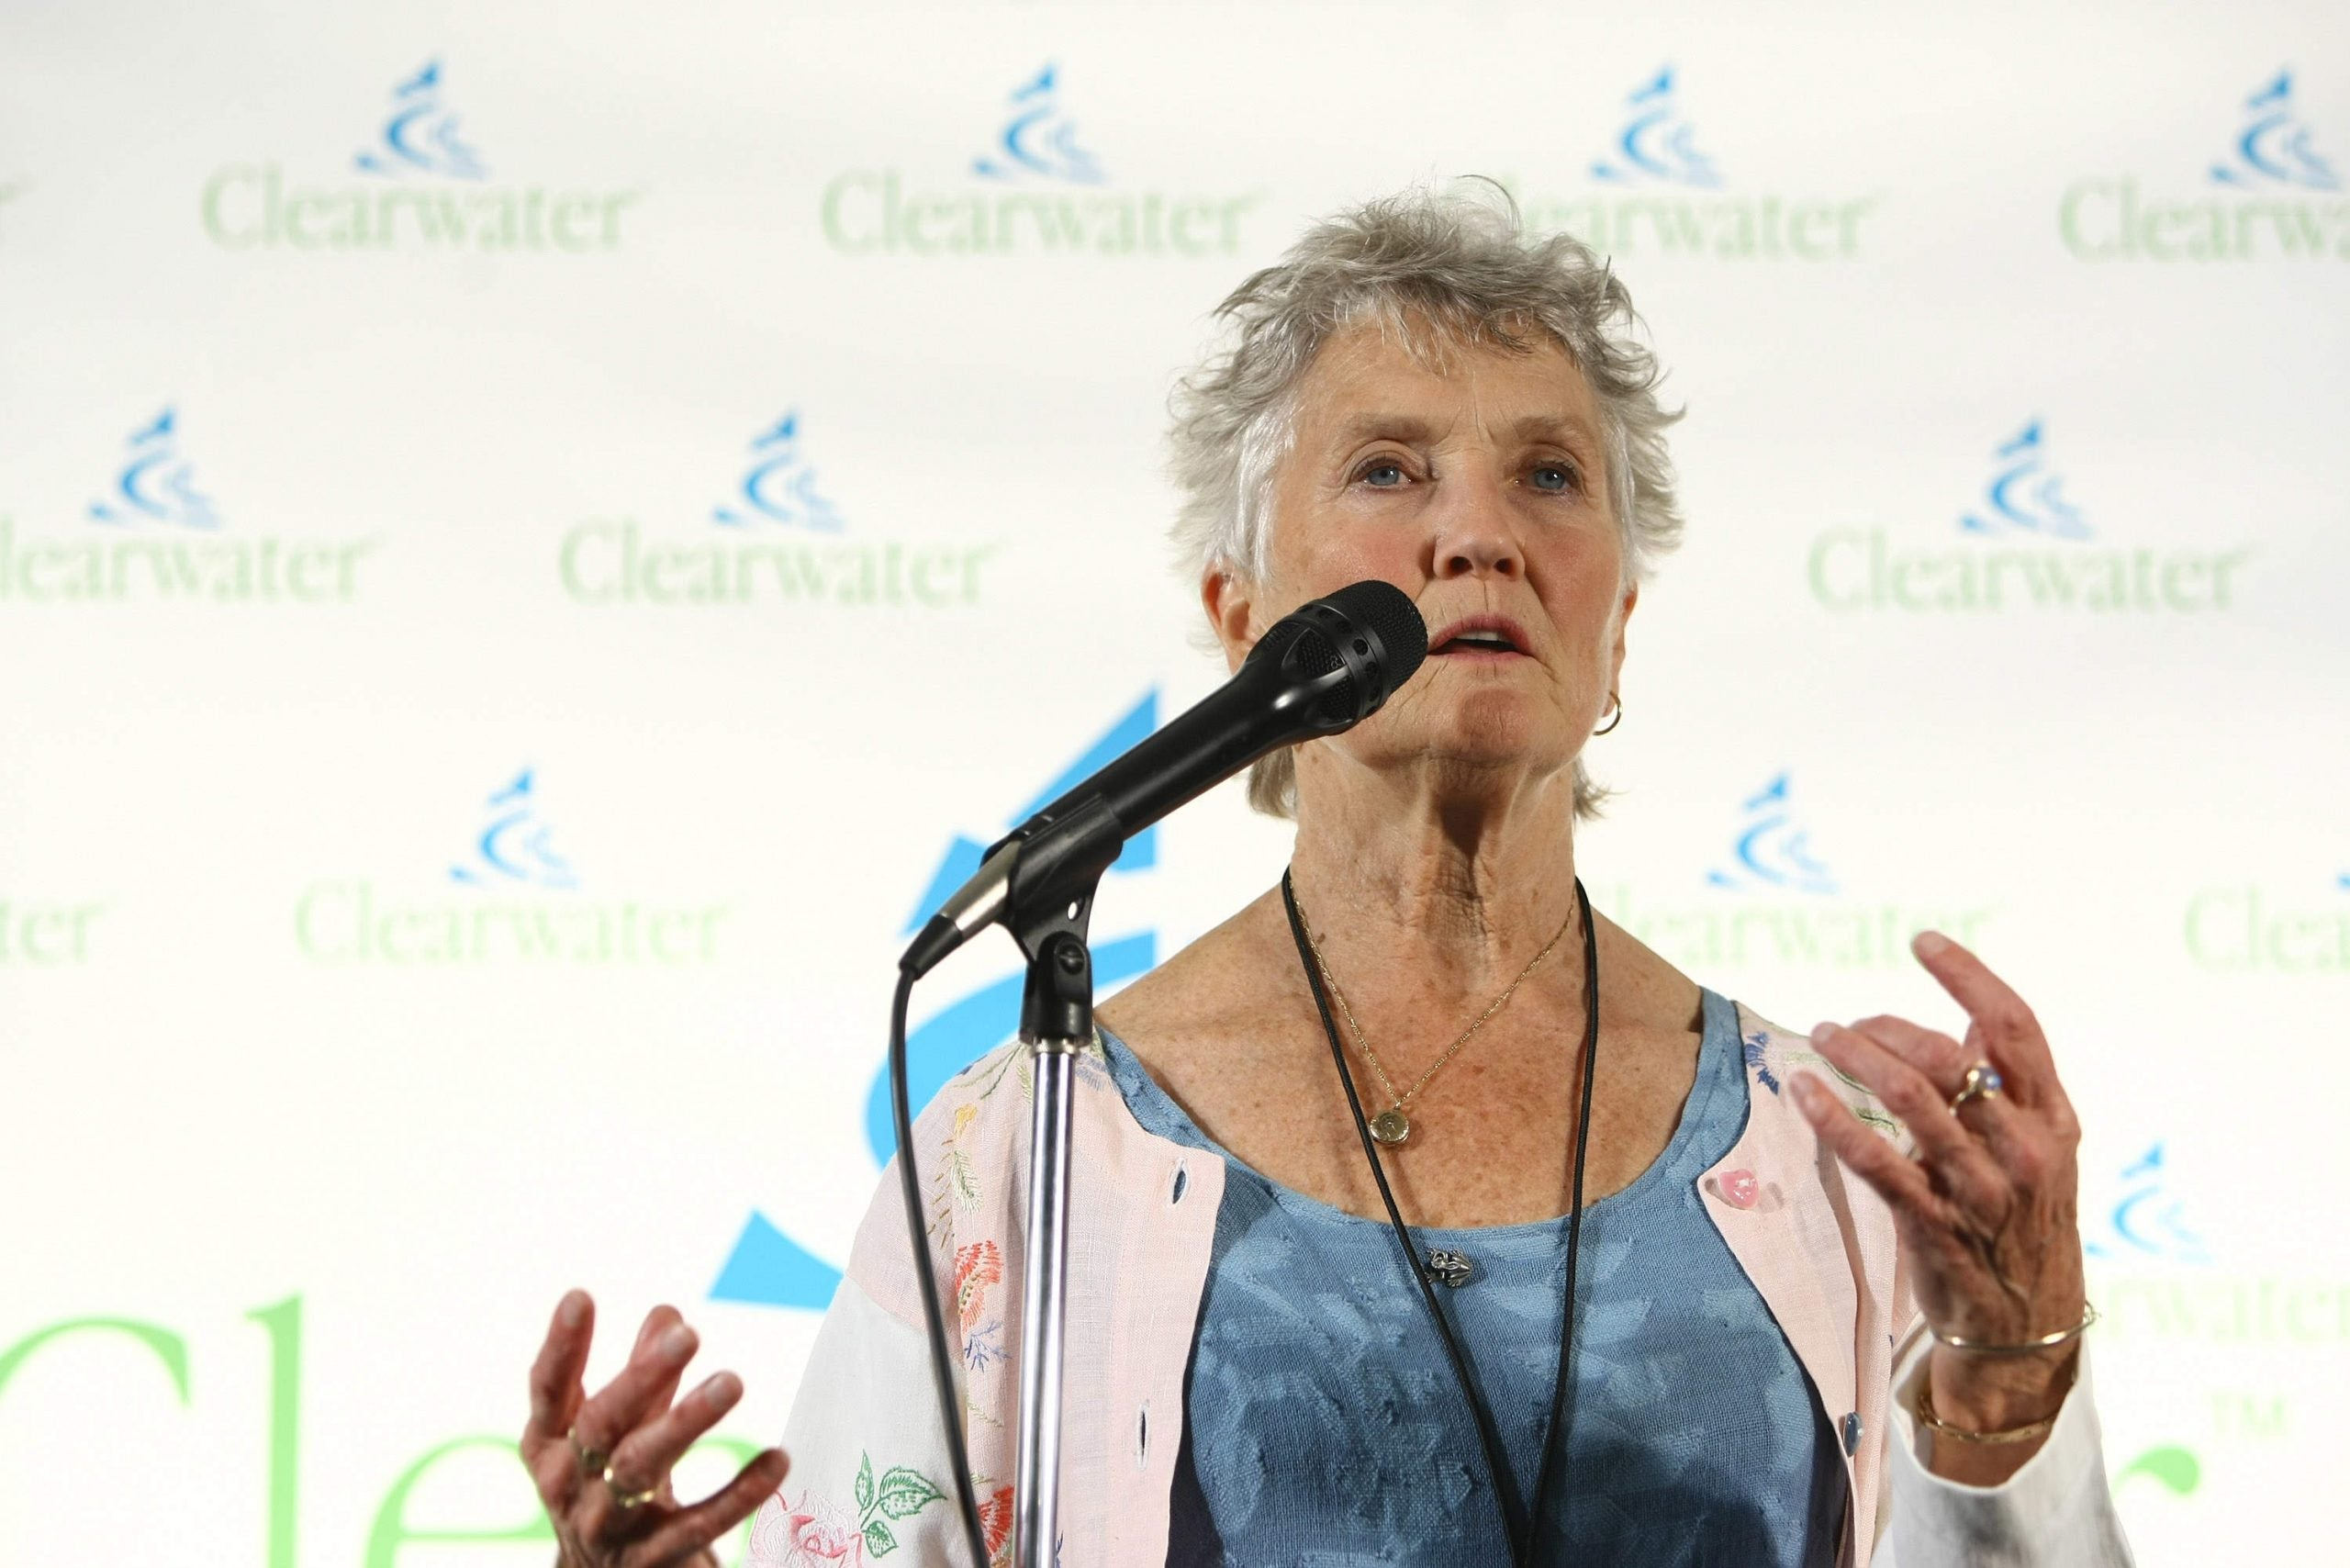 A Yankee road trip through the British countryside with Peggy Seeger